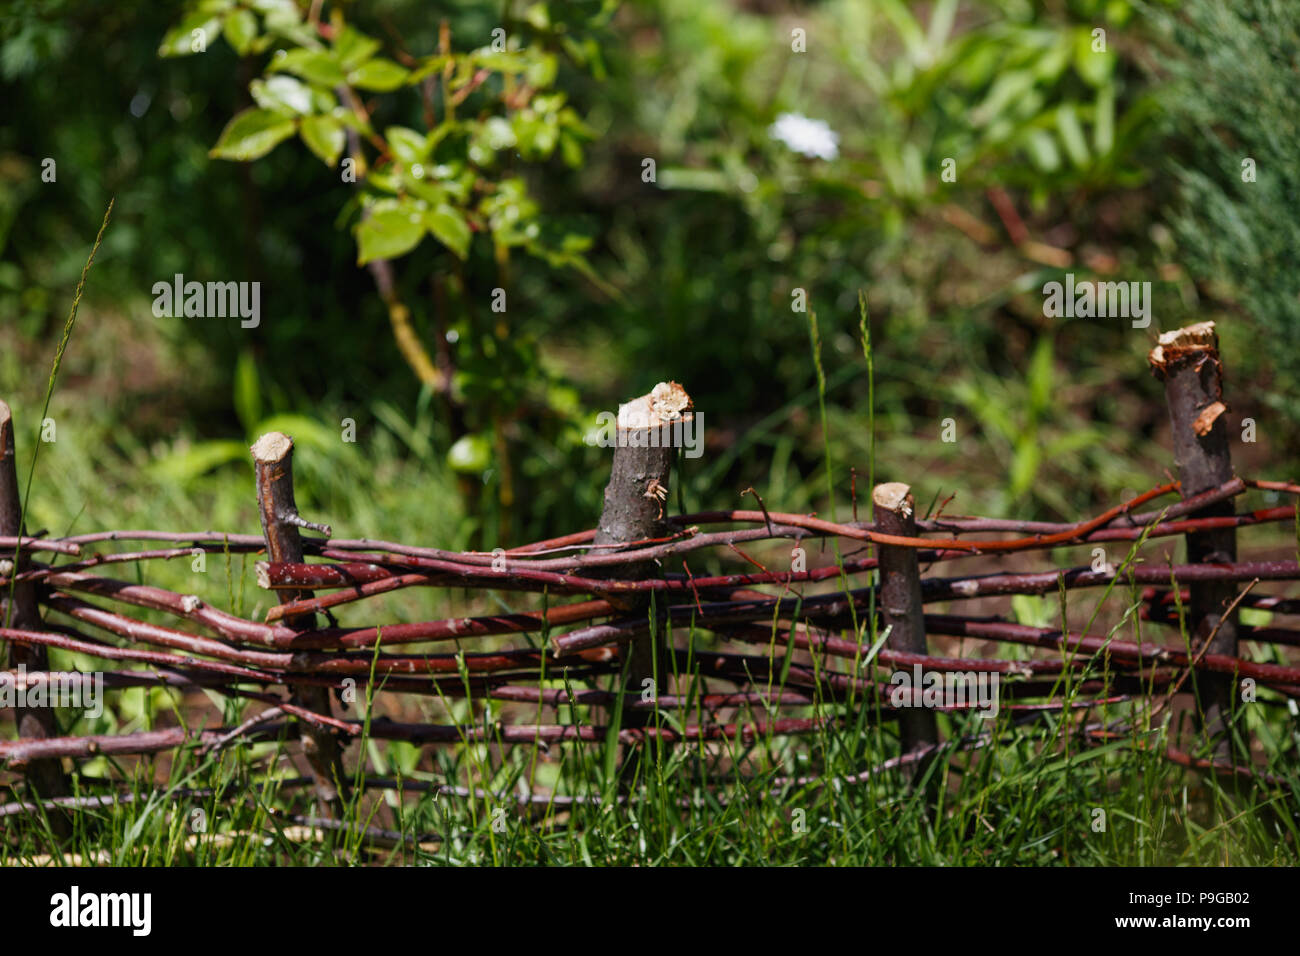 Wattle In The Green Garden Small Fence Made Of Weaving Thin Branches Stock Photo Alamy